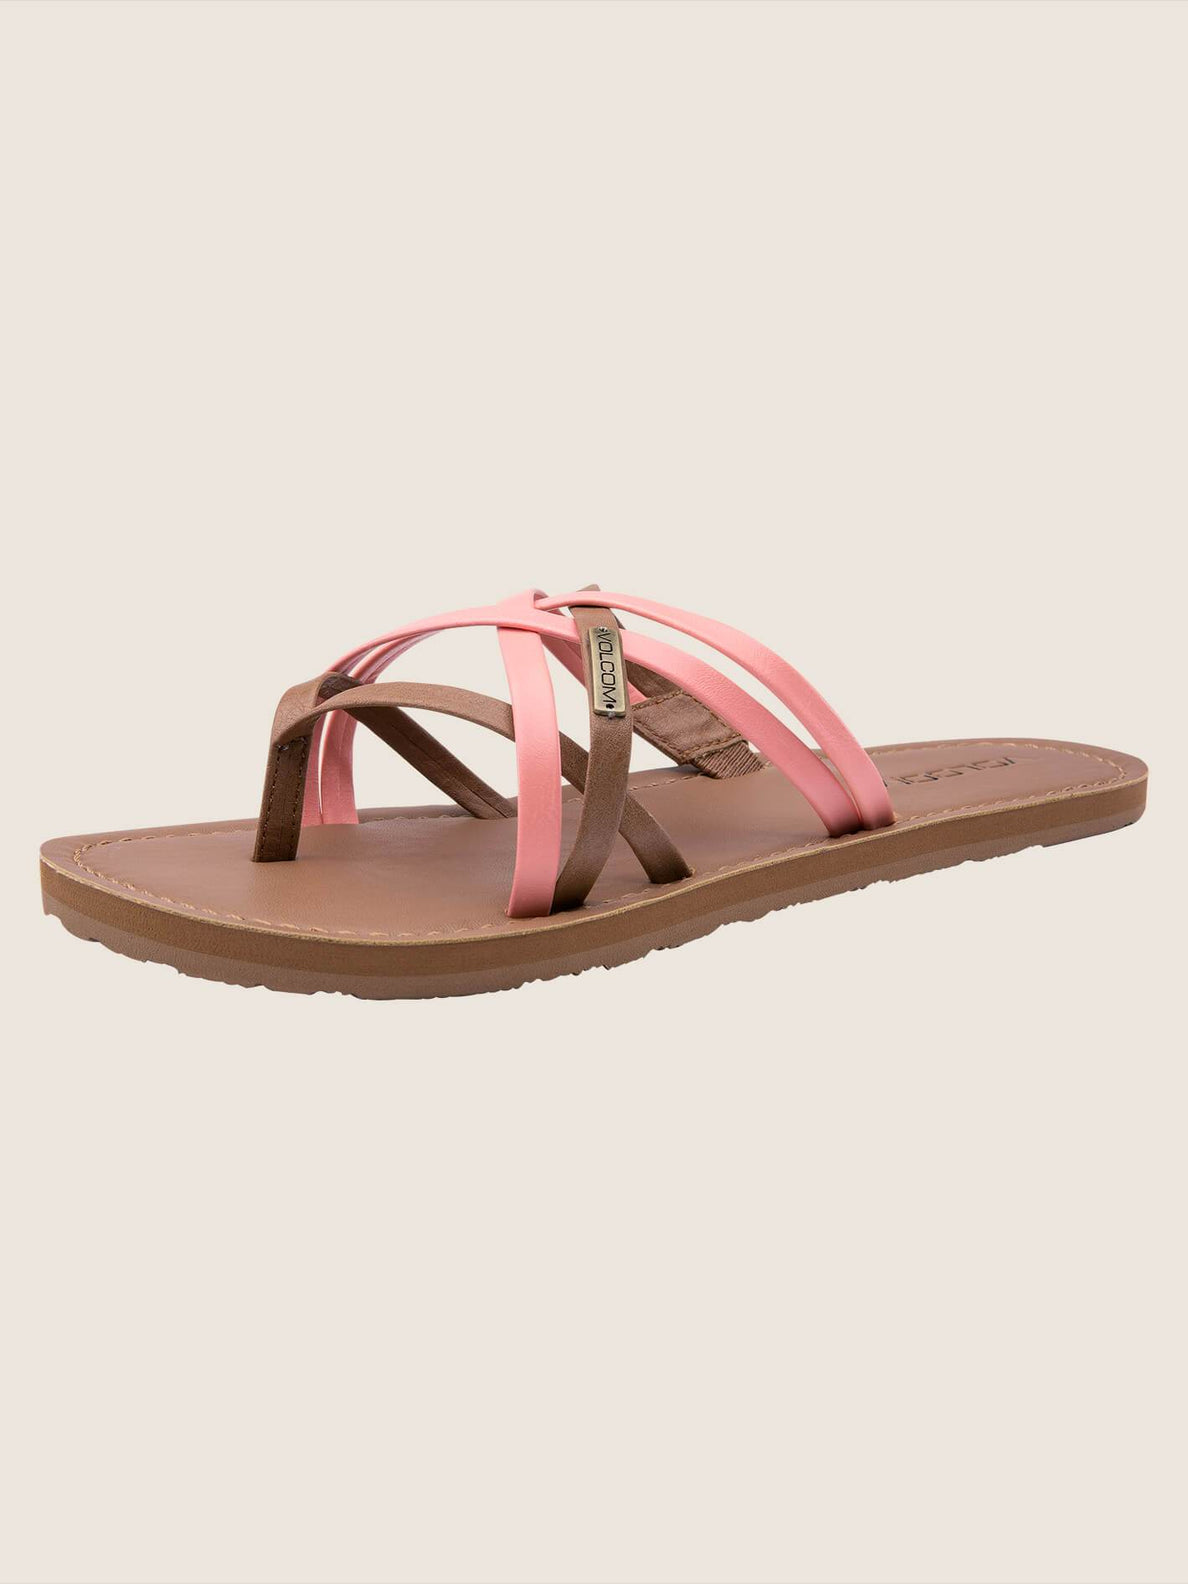 Strap Happy Sandals In Coral, Back View